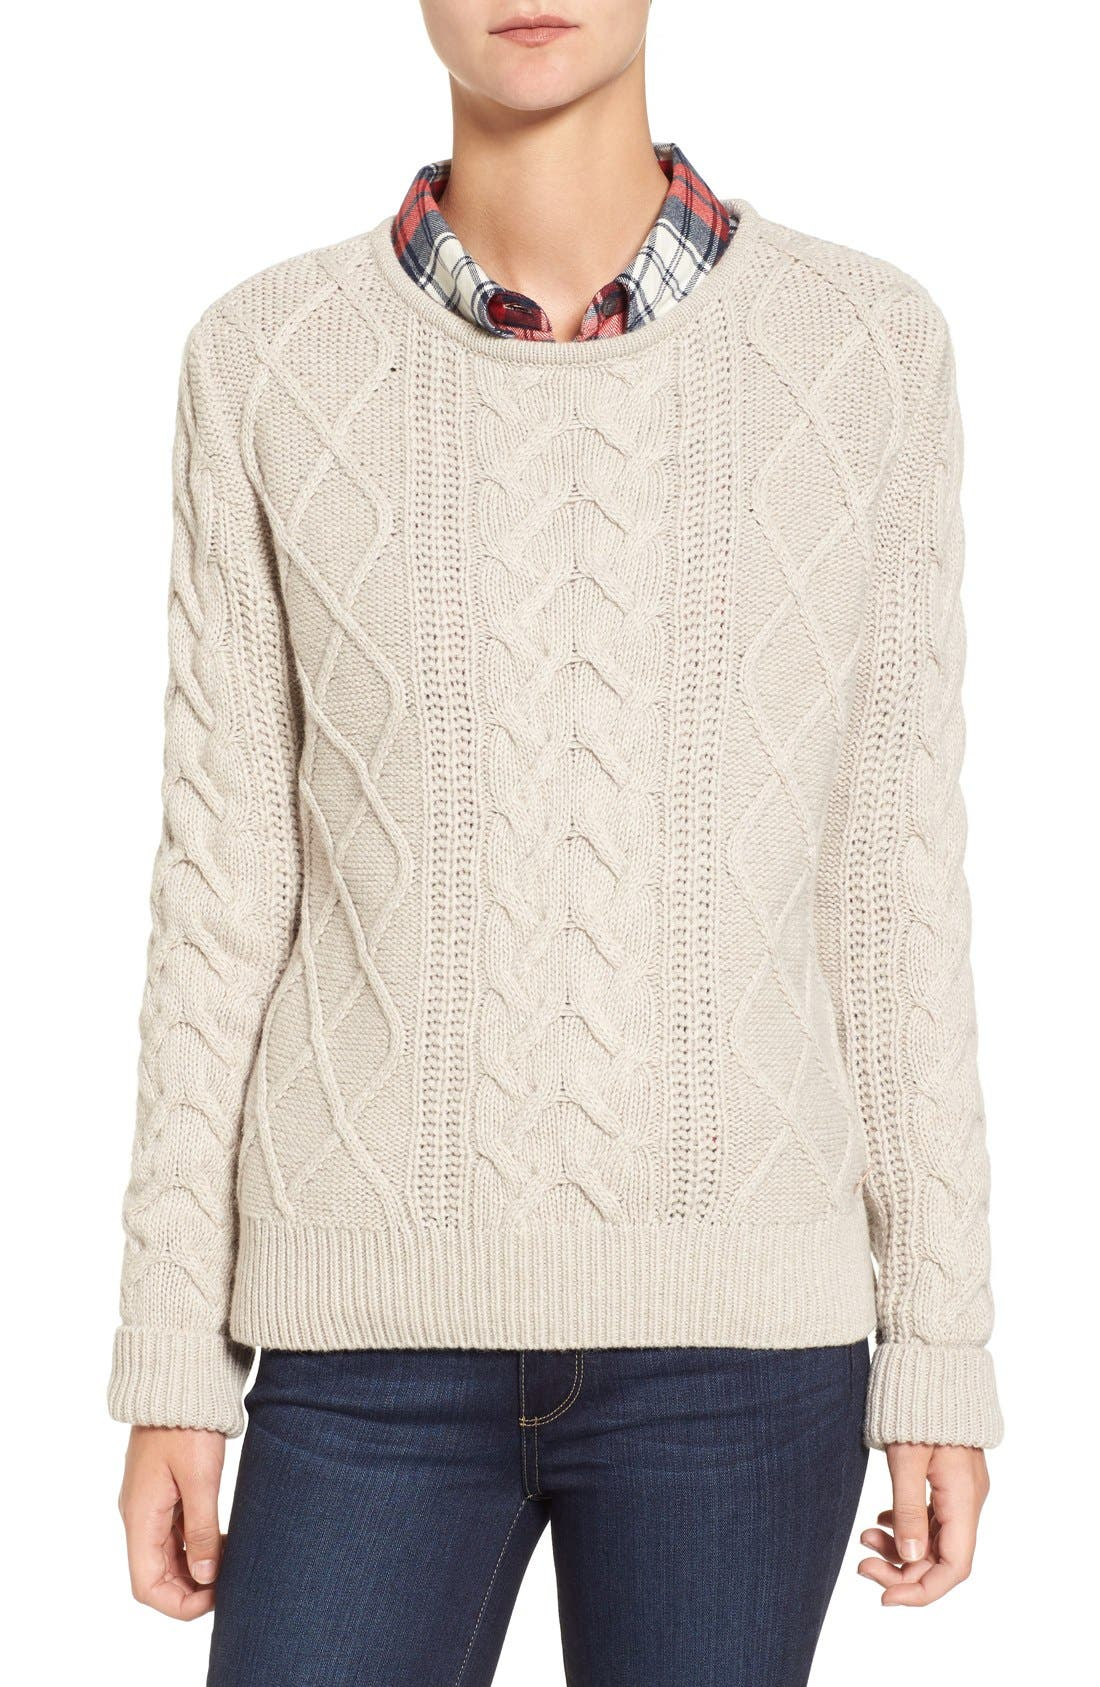 Main Image - Barbour 'Tidewater' Cable Knit Crewneck Sweater